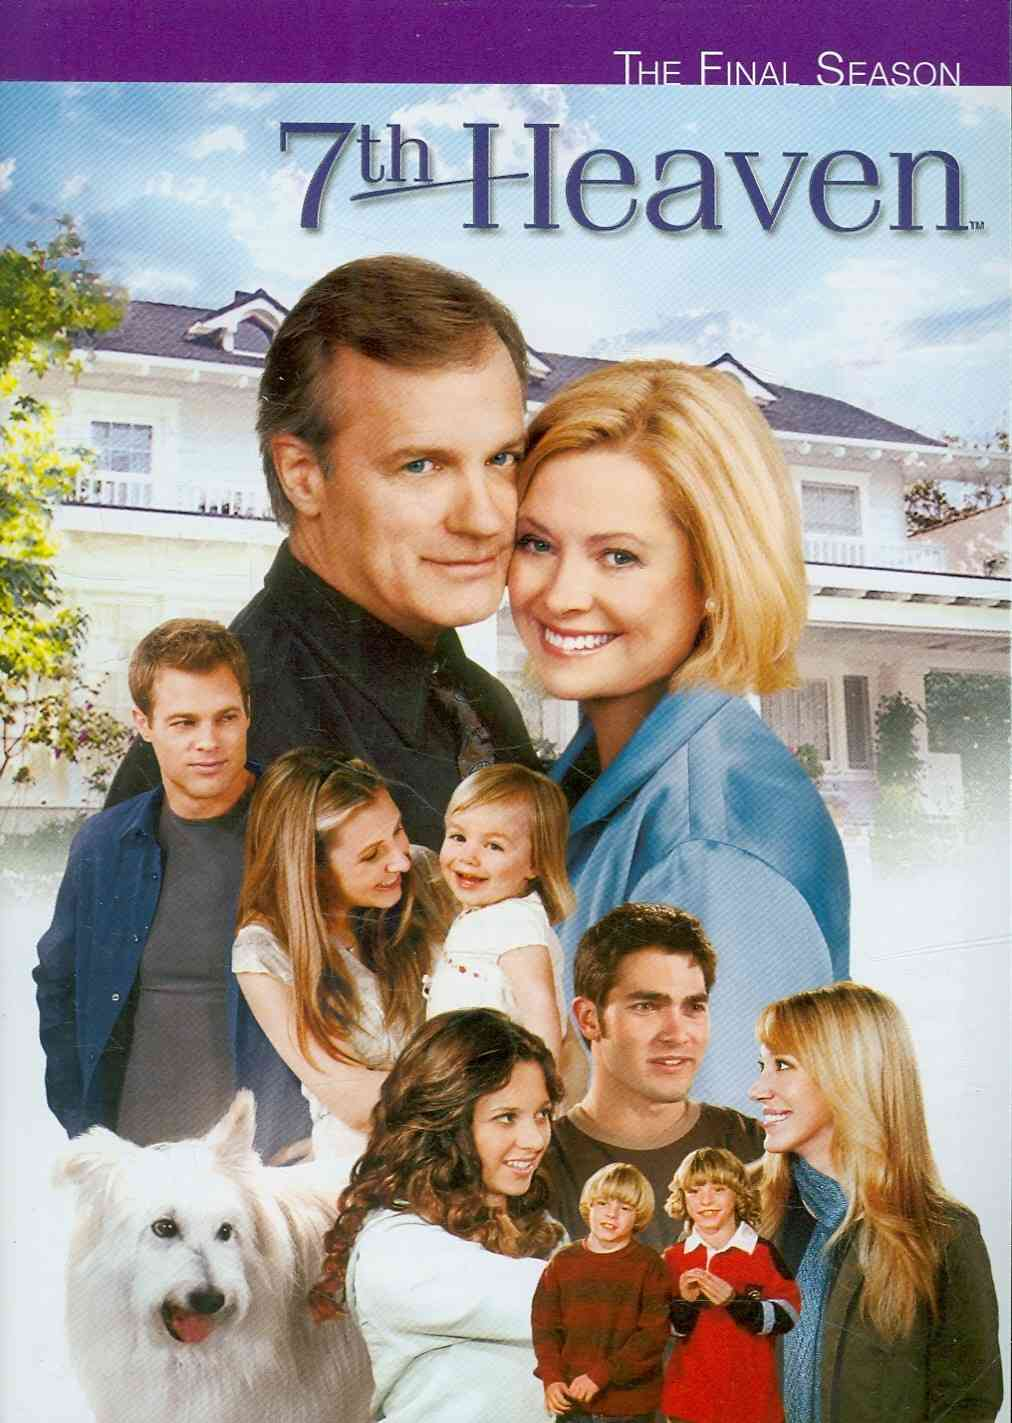 7TH HEAVEN:FINAL SEASON BY 7TH HEAVEN (DVD)